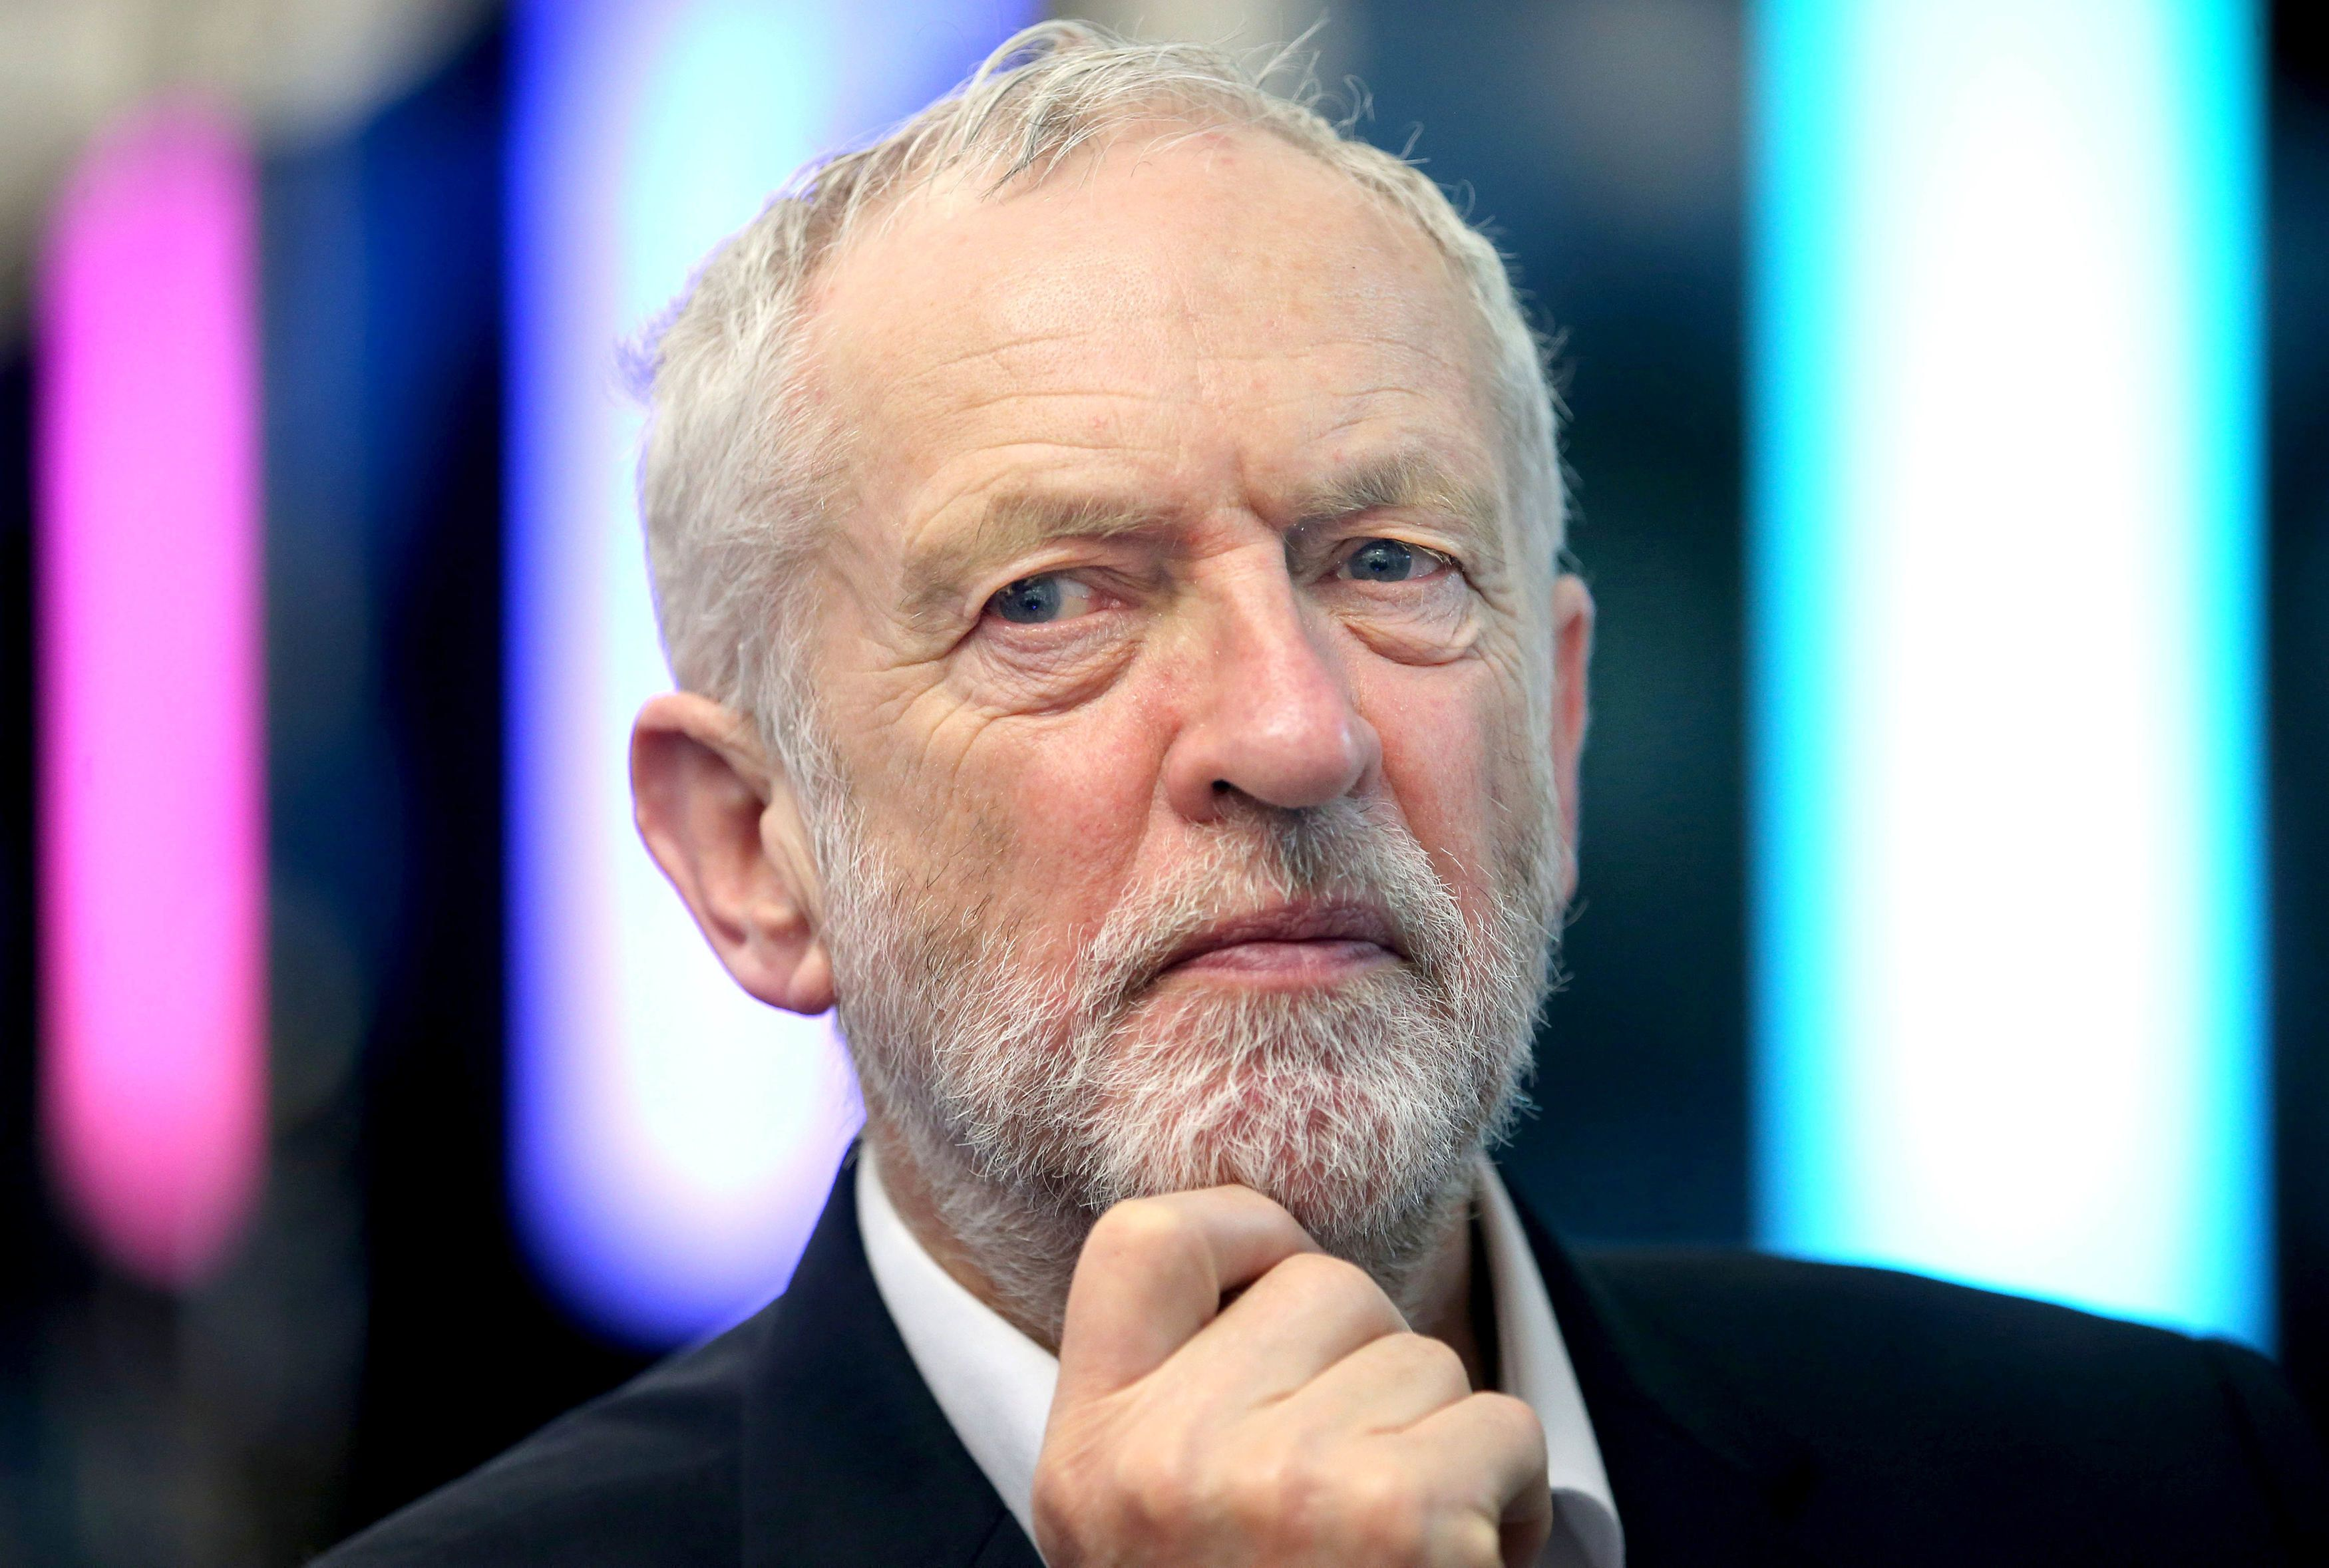 Corbyn Accused Of 'Arrogance' By Former Labour Leader Over Anti-Semitism